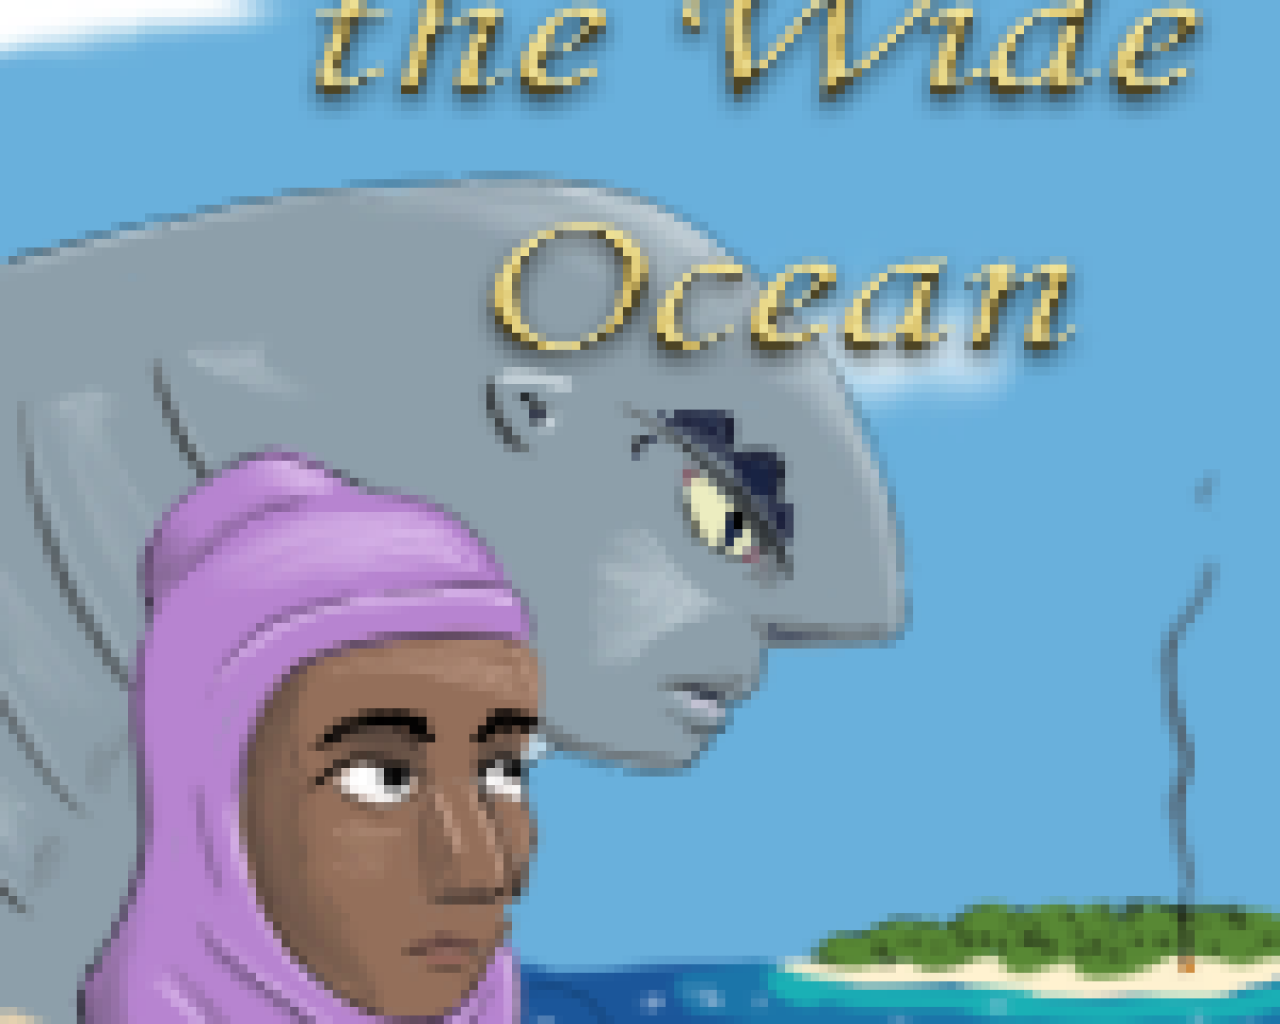 Poster Image for The Wide Ocean